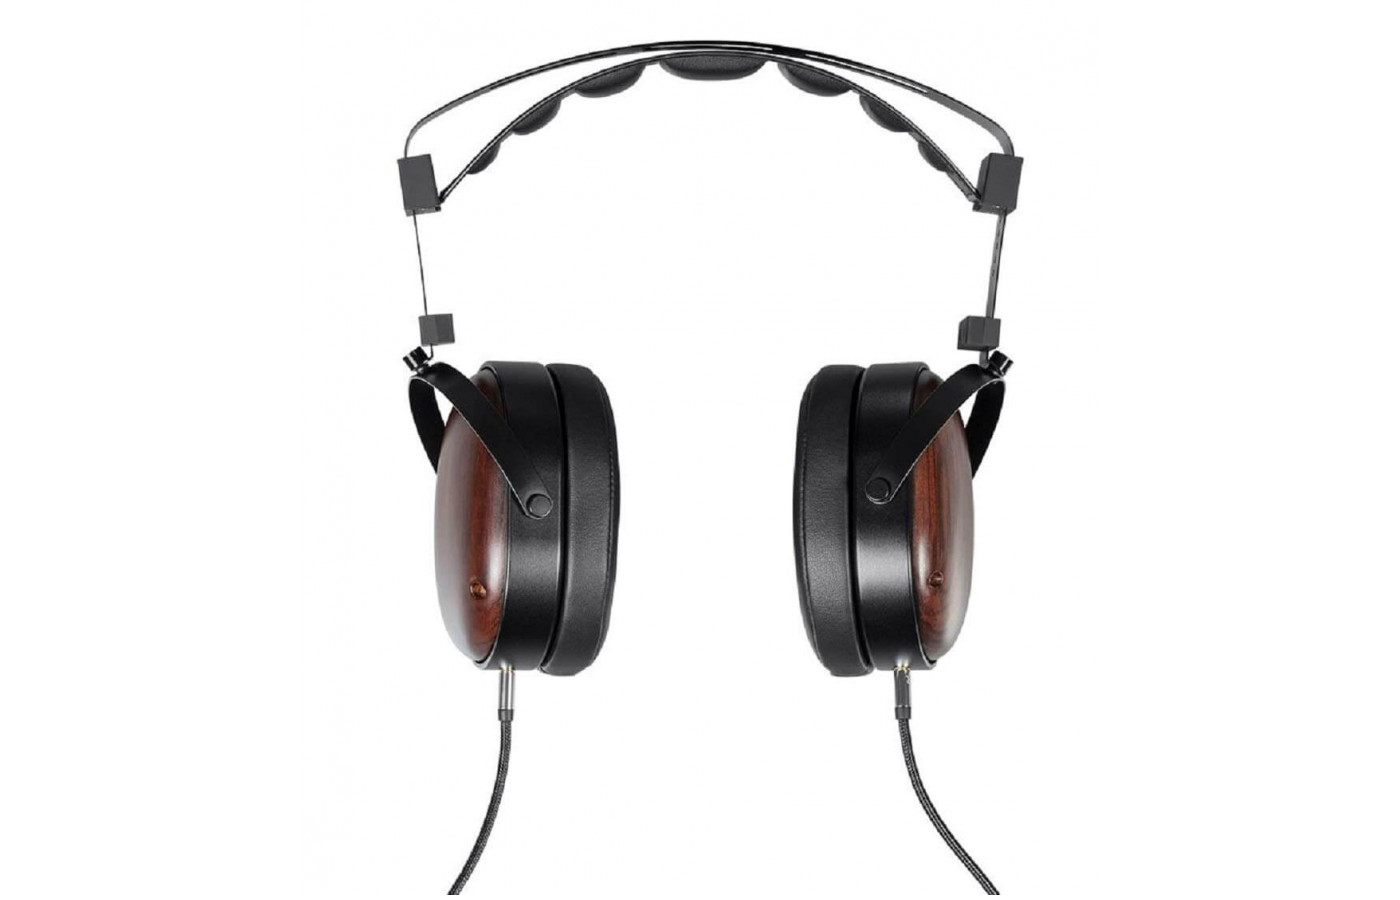 Faux leather padding gives the Monolith M565C a comfortable fit